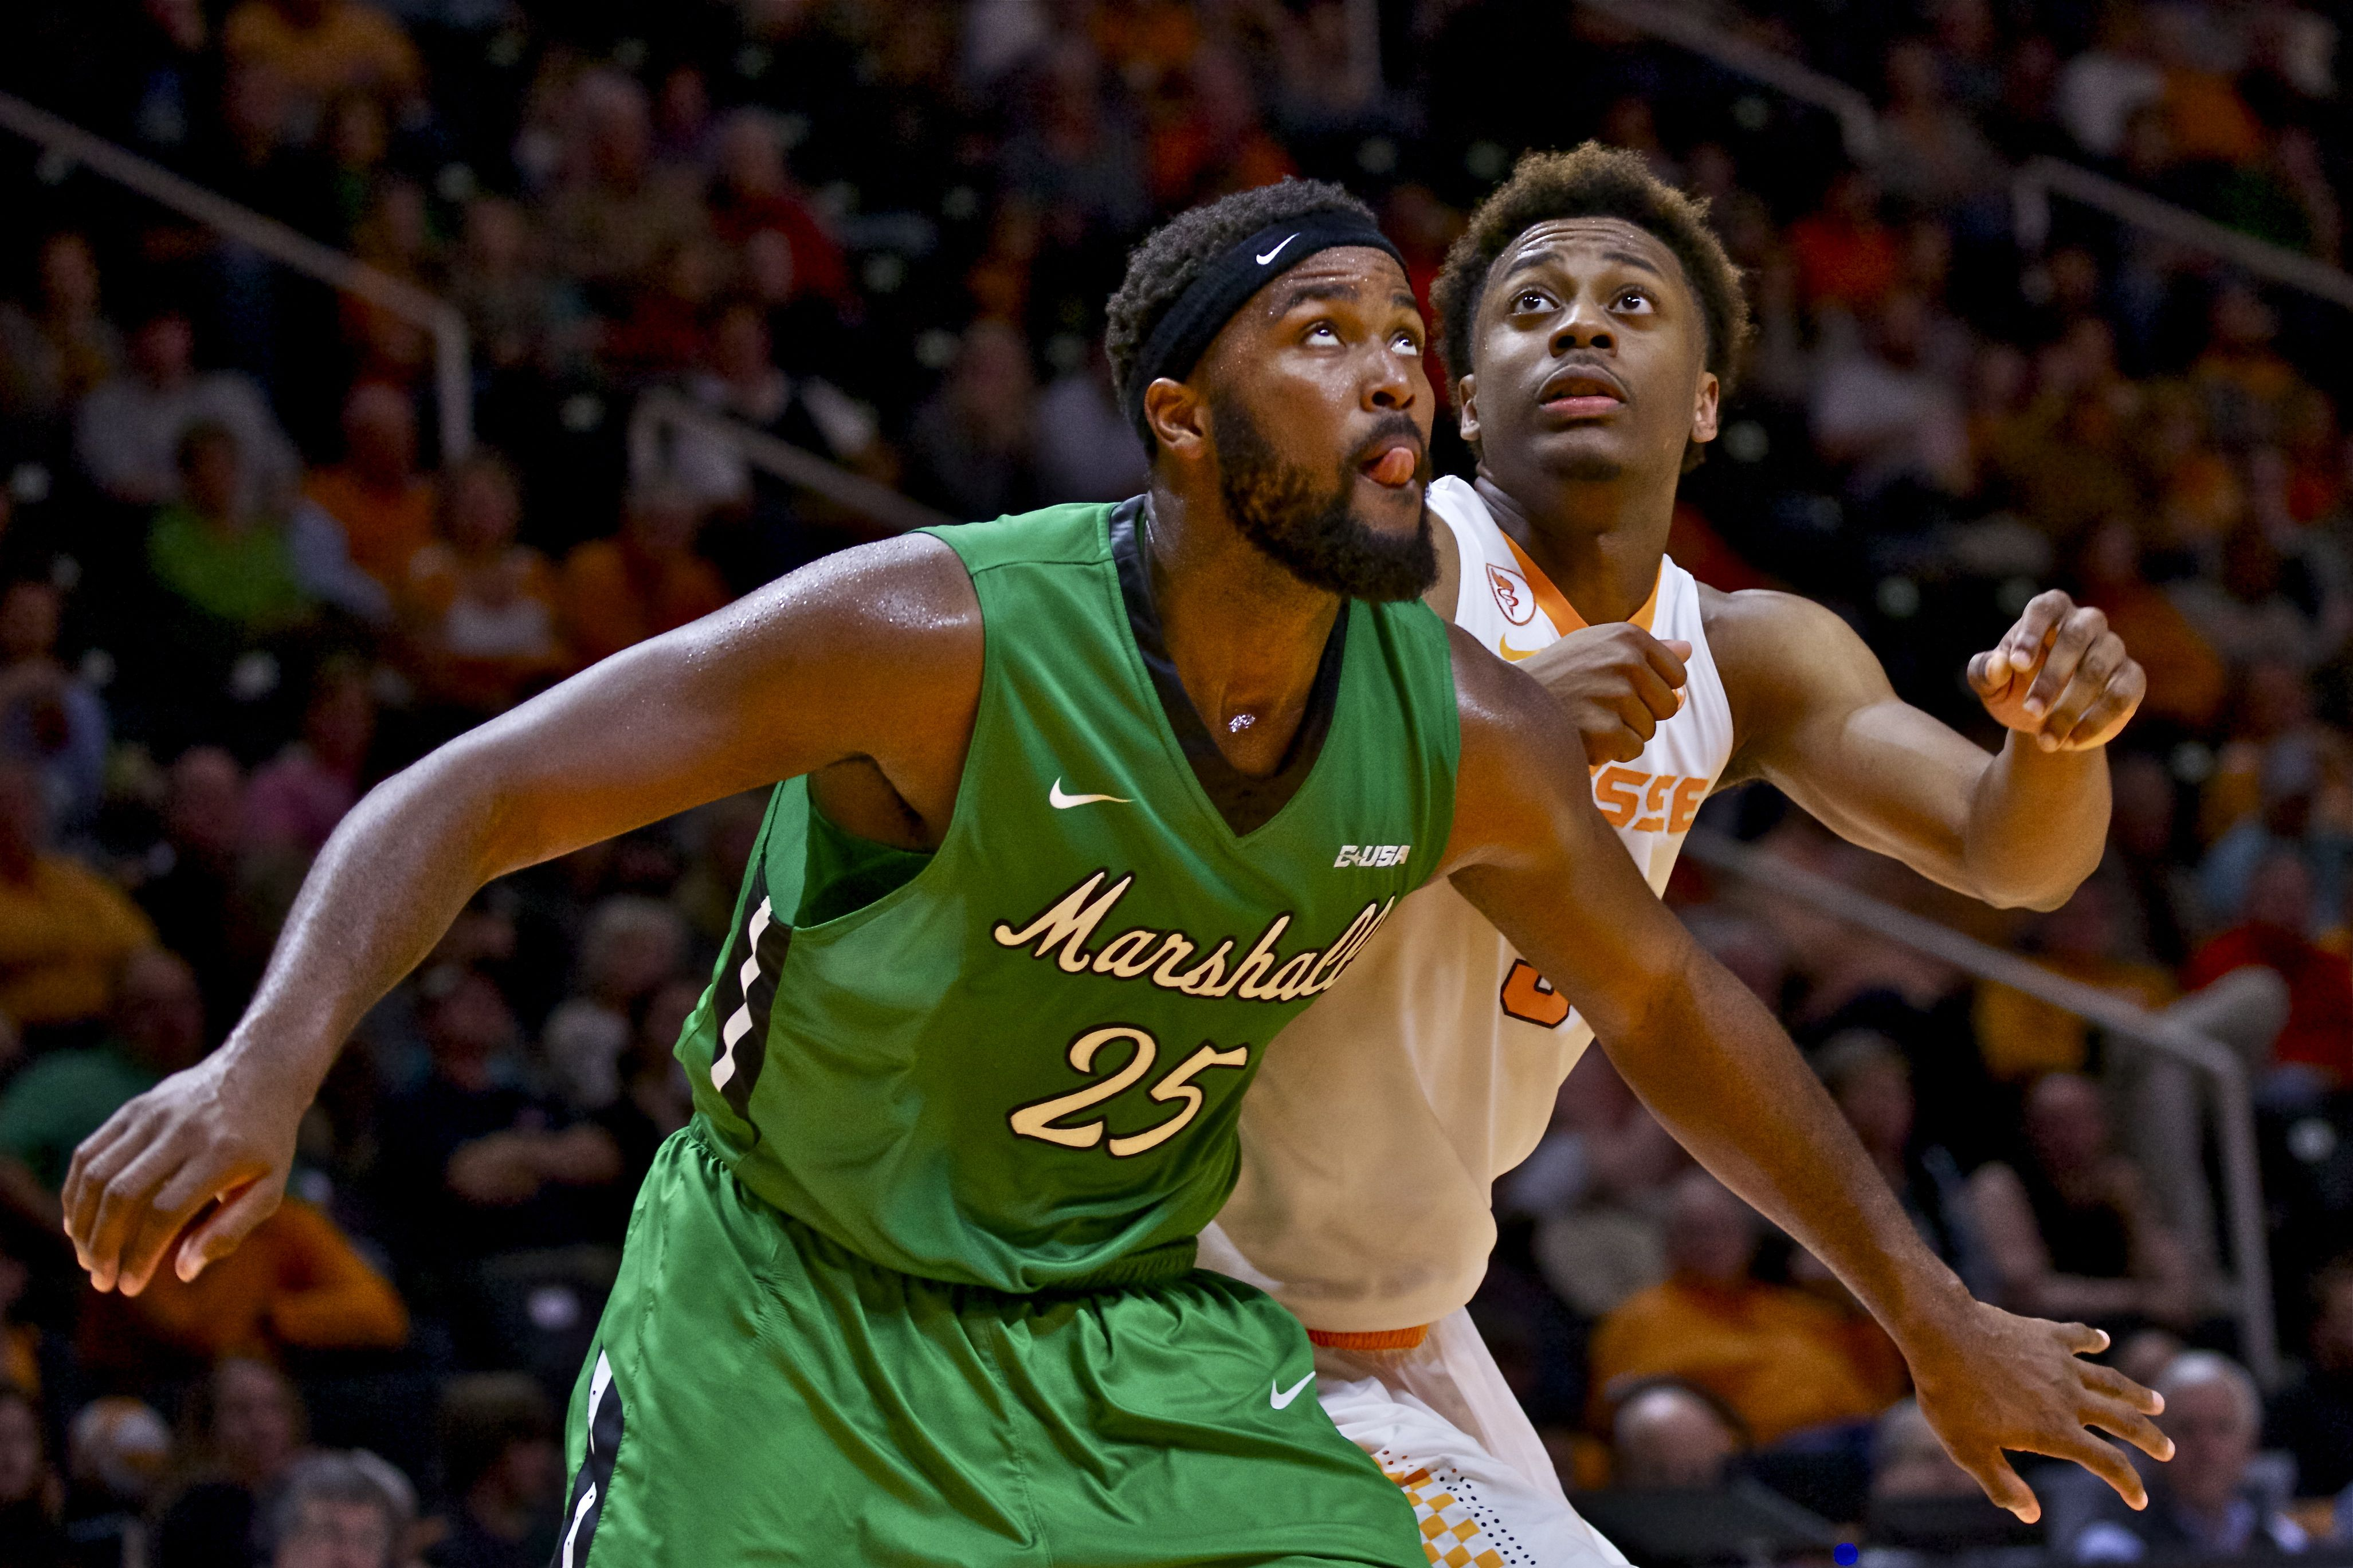 Photo Gallery: Tennessee vs. Marshall Basketball 11-19-15